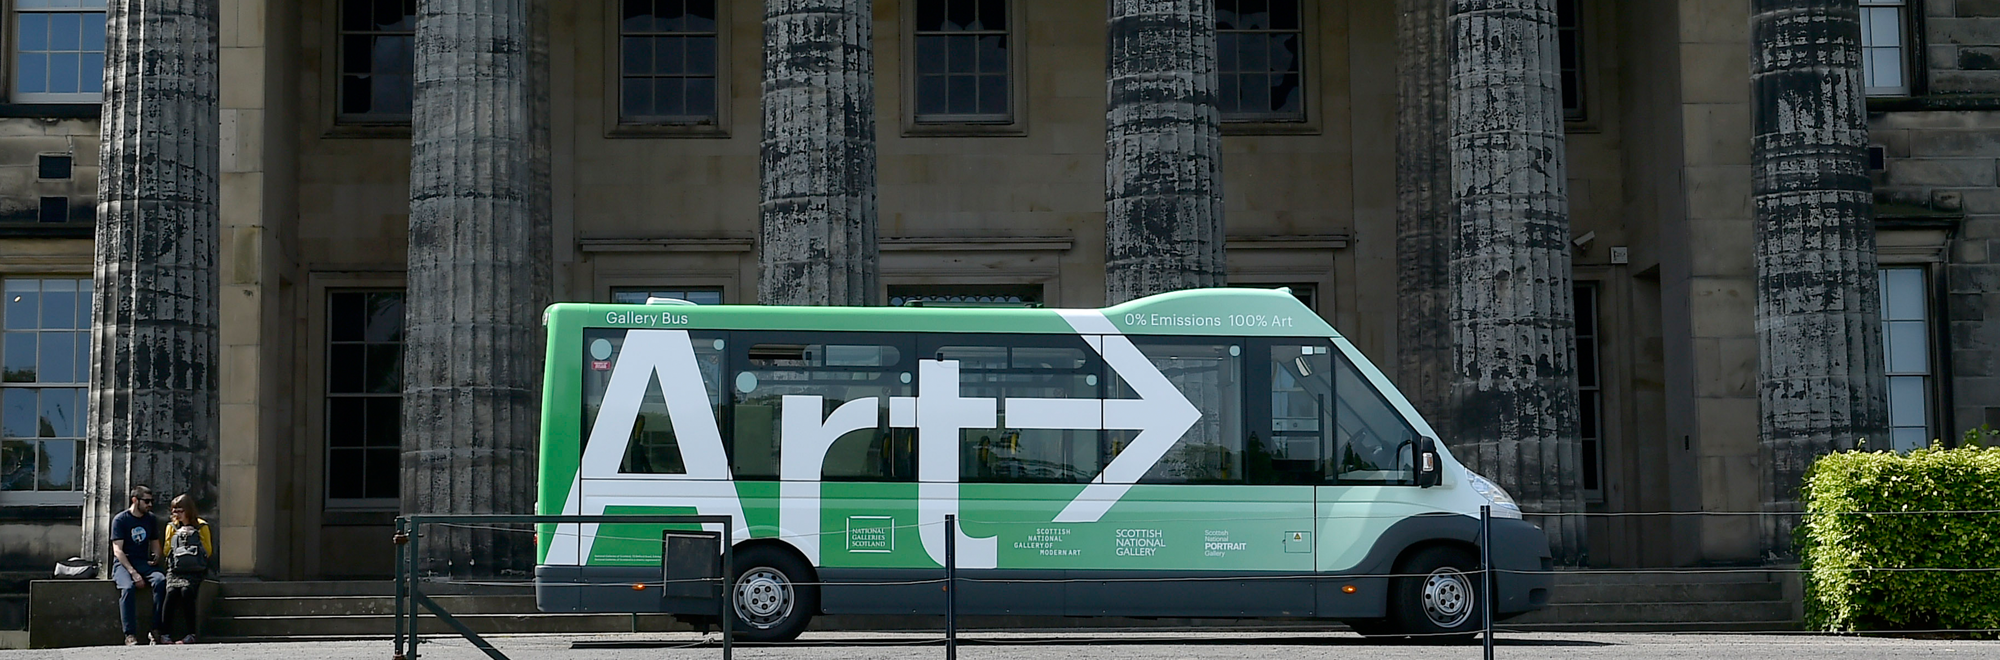 Gallery bus | National Galleries of Scotland